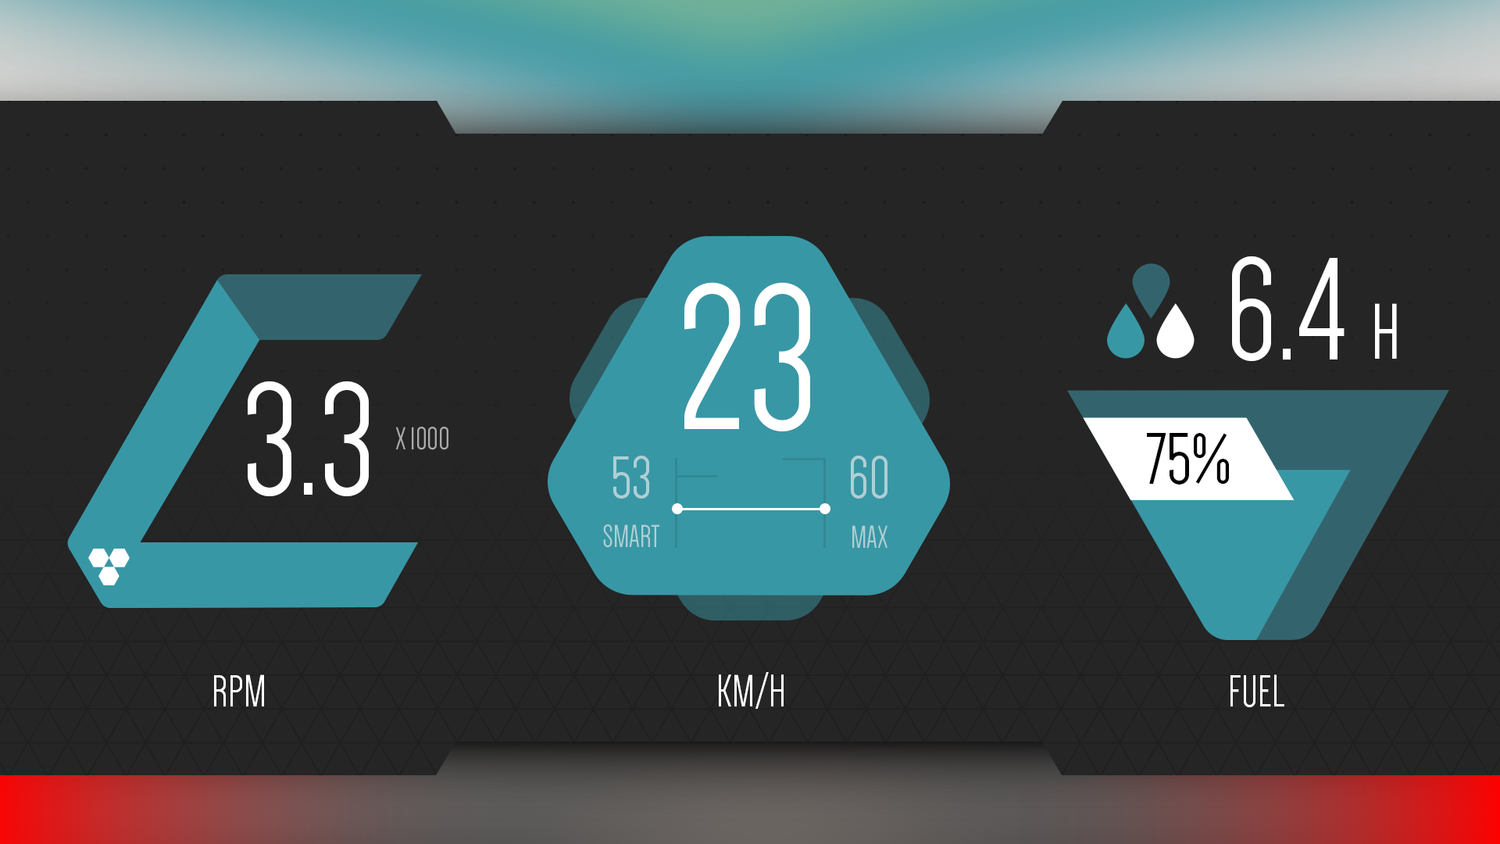 The Dashboard UI with an RPM meter, speedometer and fuel indicator. The break lights are visualised as red gradients at the bottom of the screen.